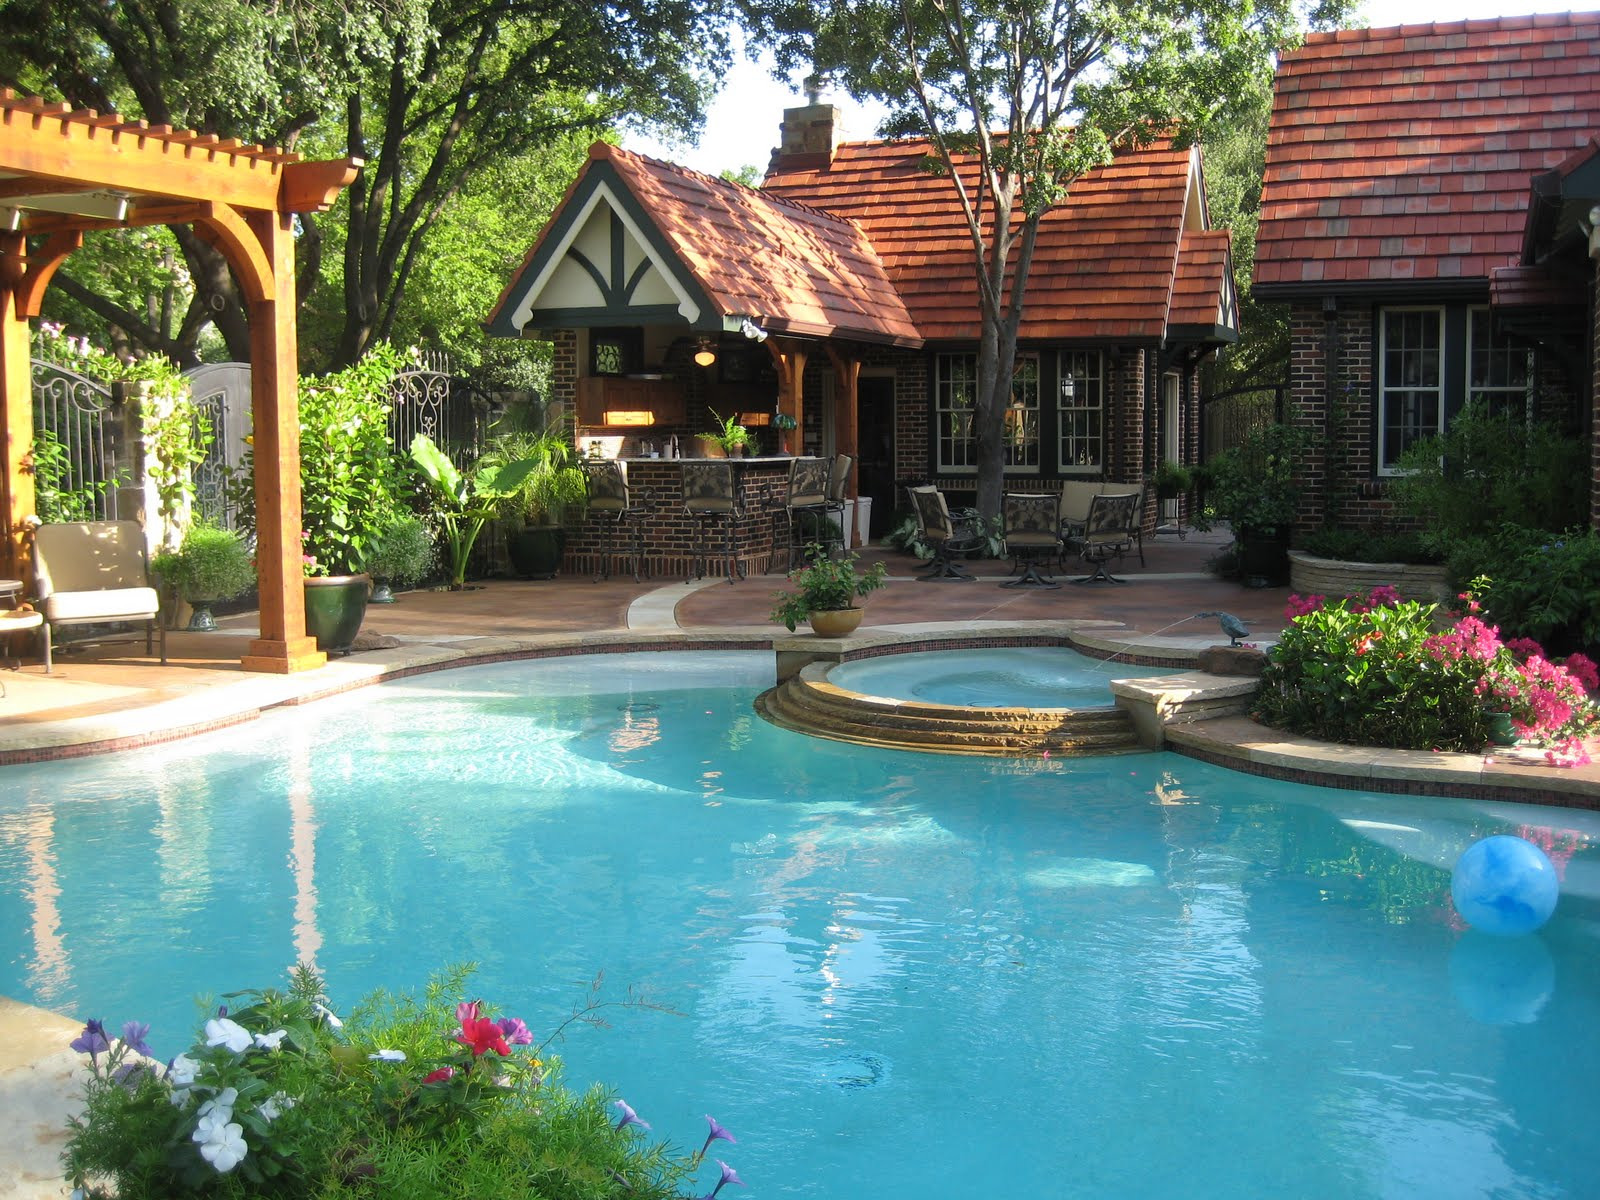 Outdoor Kitchens: Guest post by Kalamazoo Outdoor Gourmet - Jamie ...